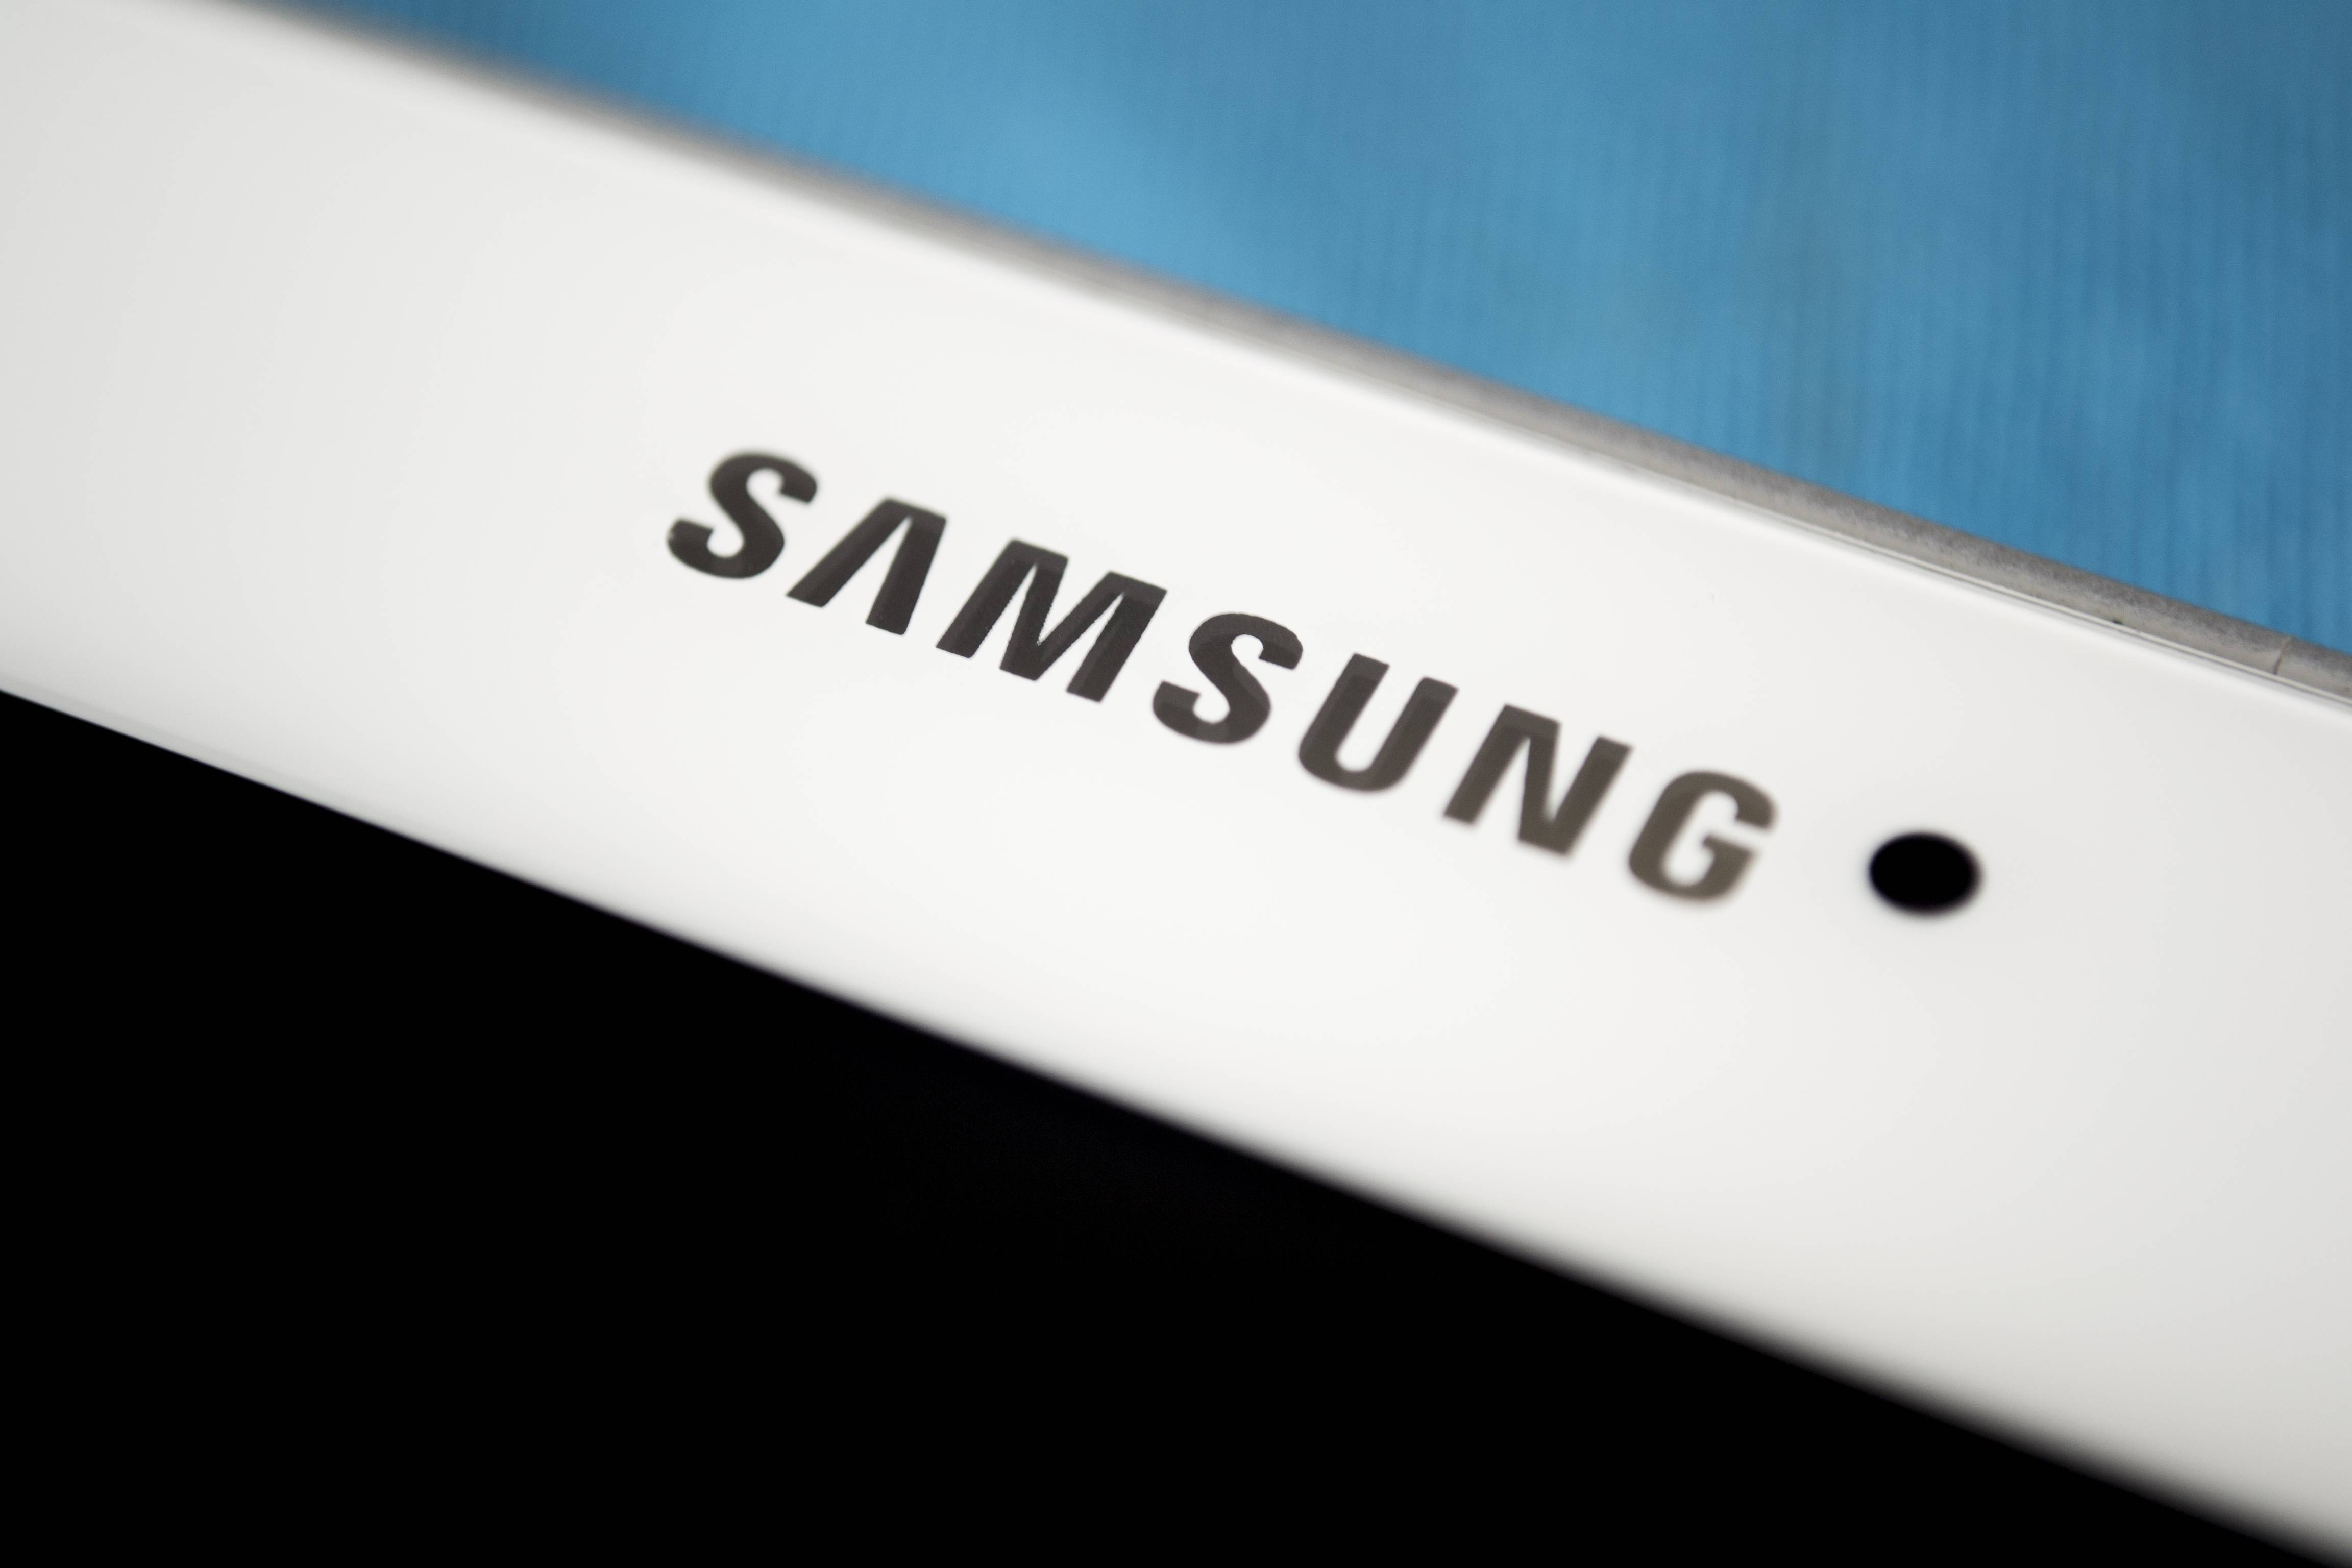 Samsung.wallpaper Hd Background 8 HD Wallpapers | Hdimges.